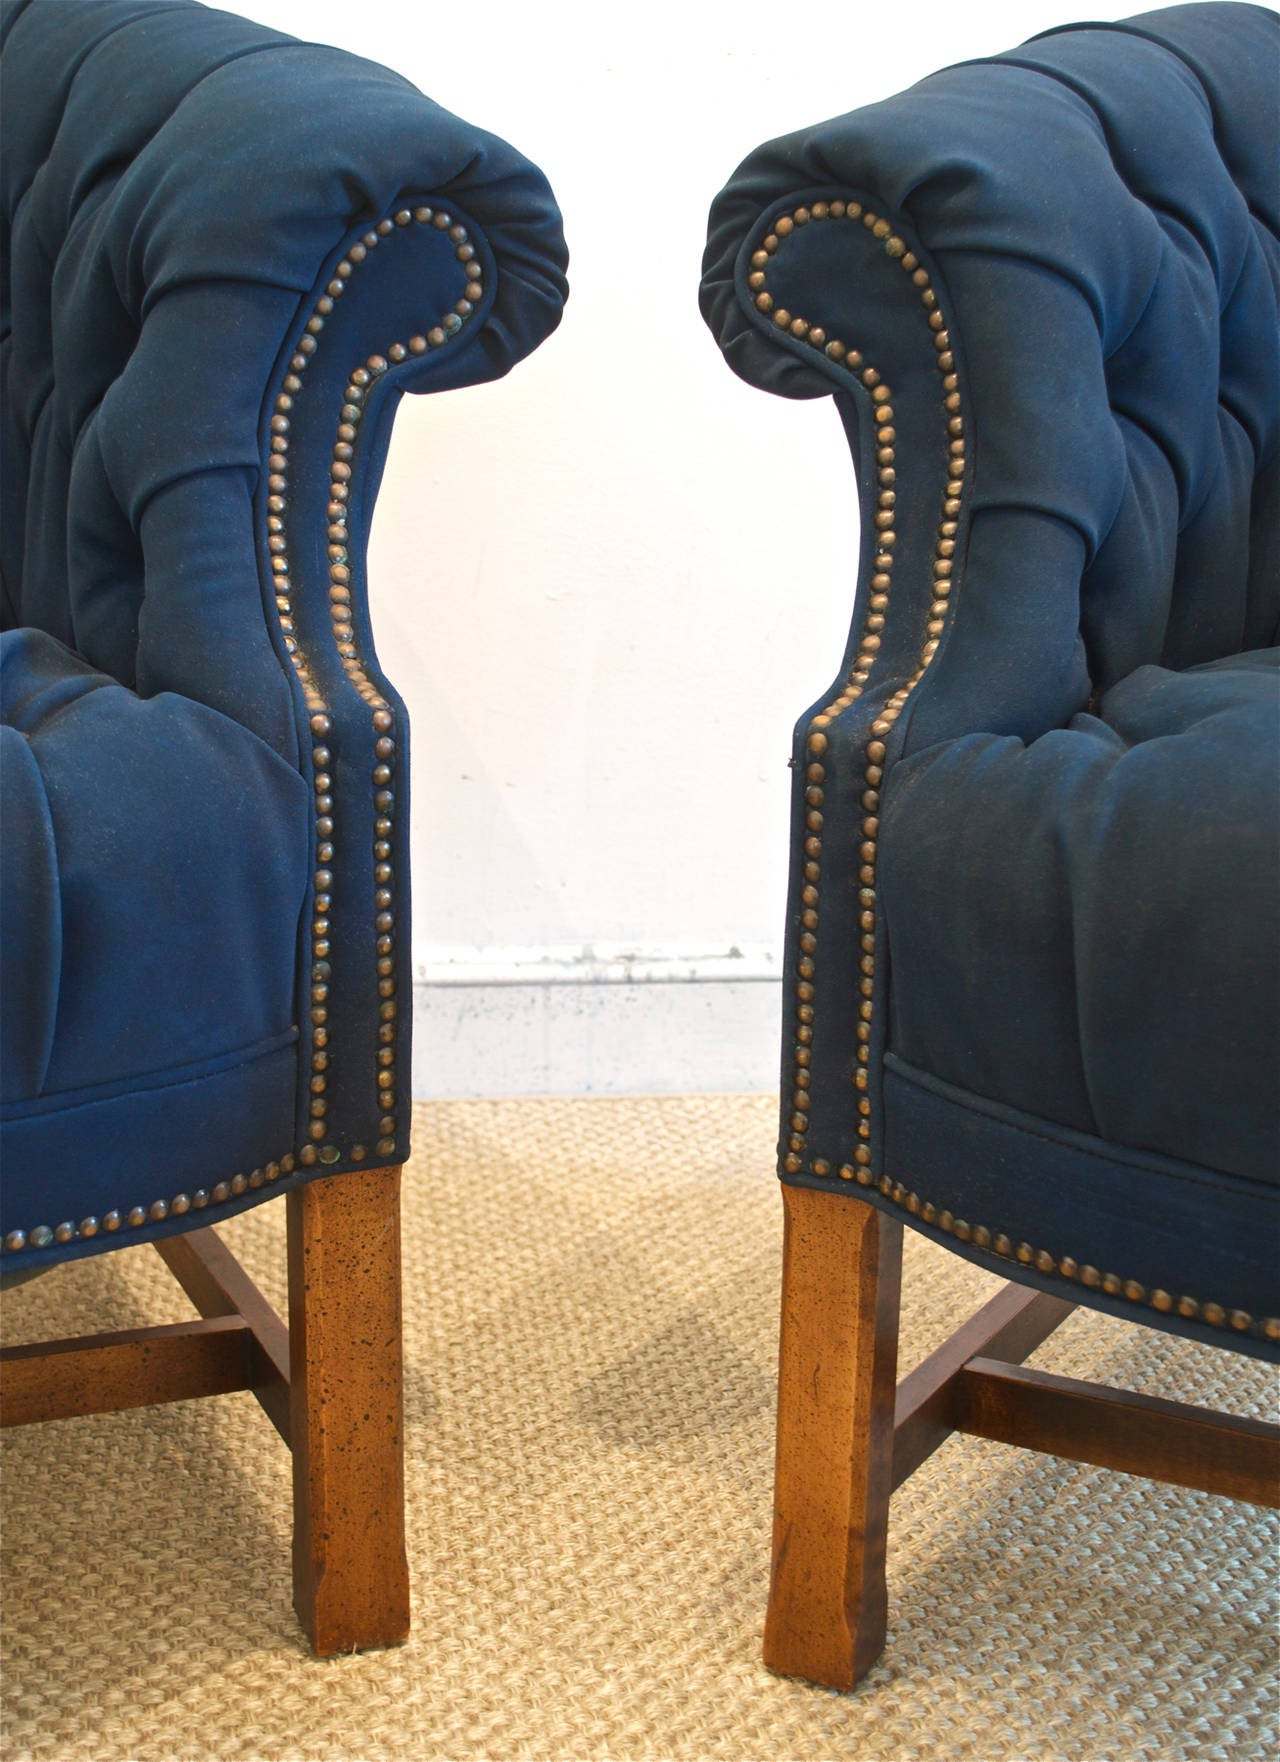 Navy Club Chair Button Tufted Club Chairs In Navy Canvas For Sale At 1stdibs